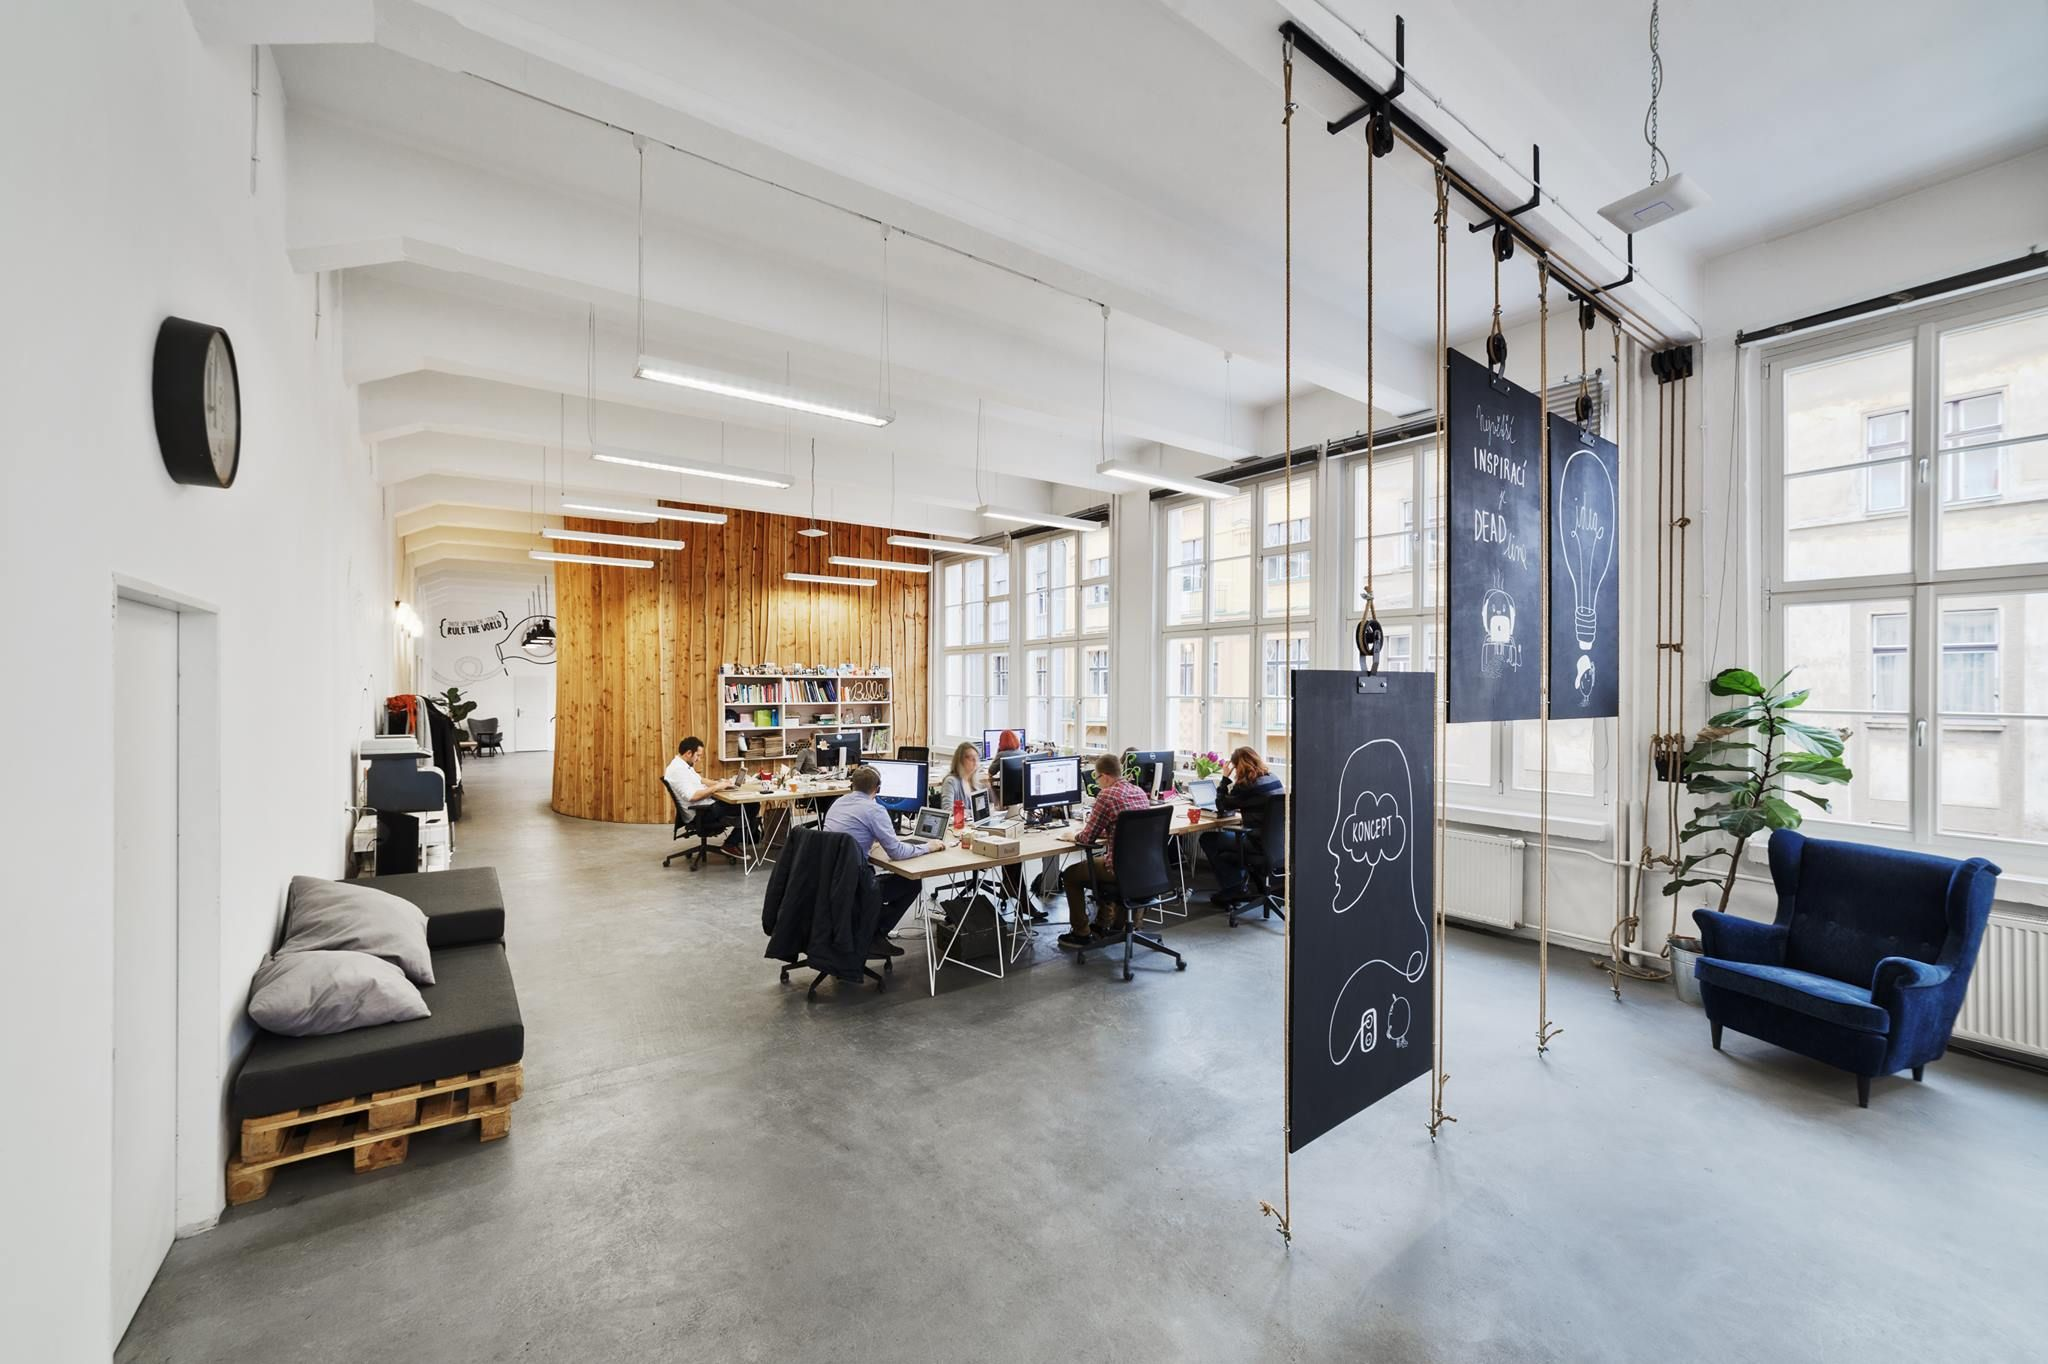 Captivating A Tour Of Bubbleu0027s New Super Cool Office | Cool Office, Offices And Prague